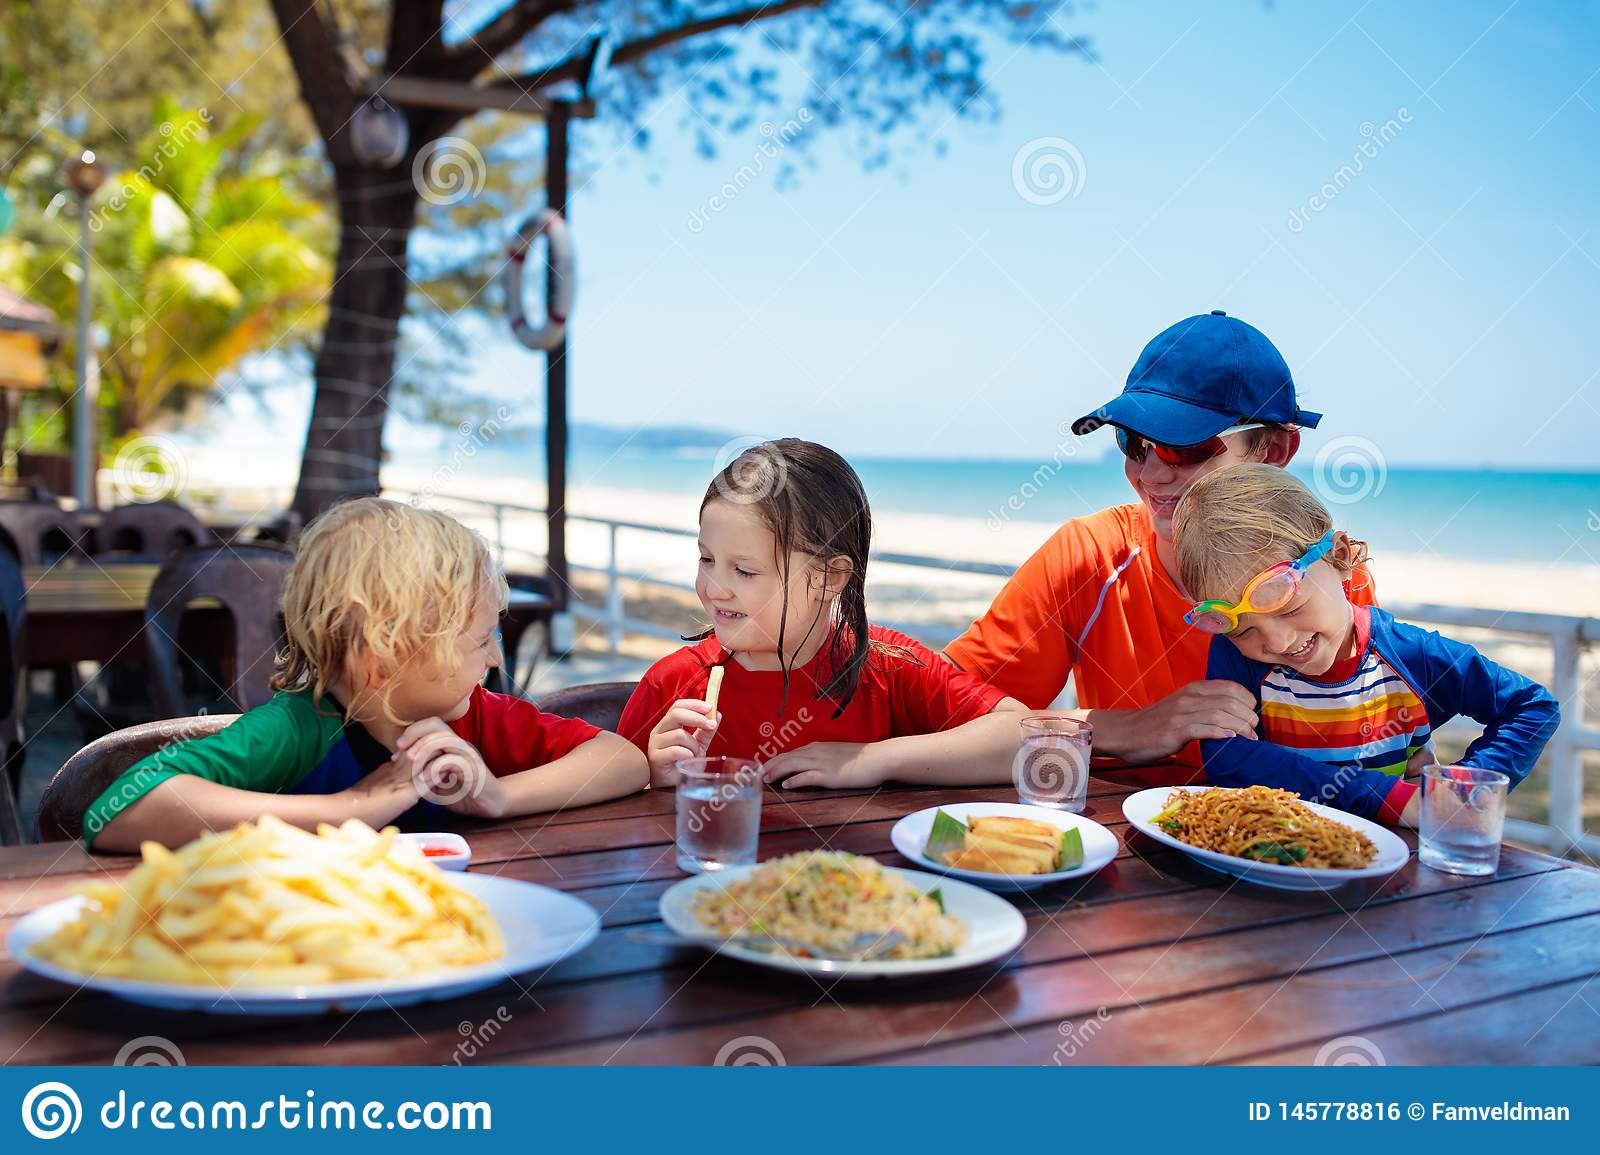 Family vacation lunch. Kids in beach restaurant